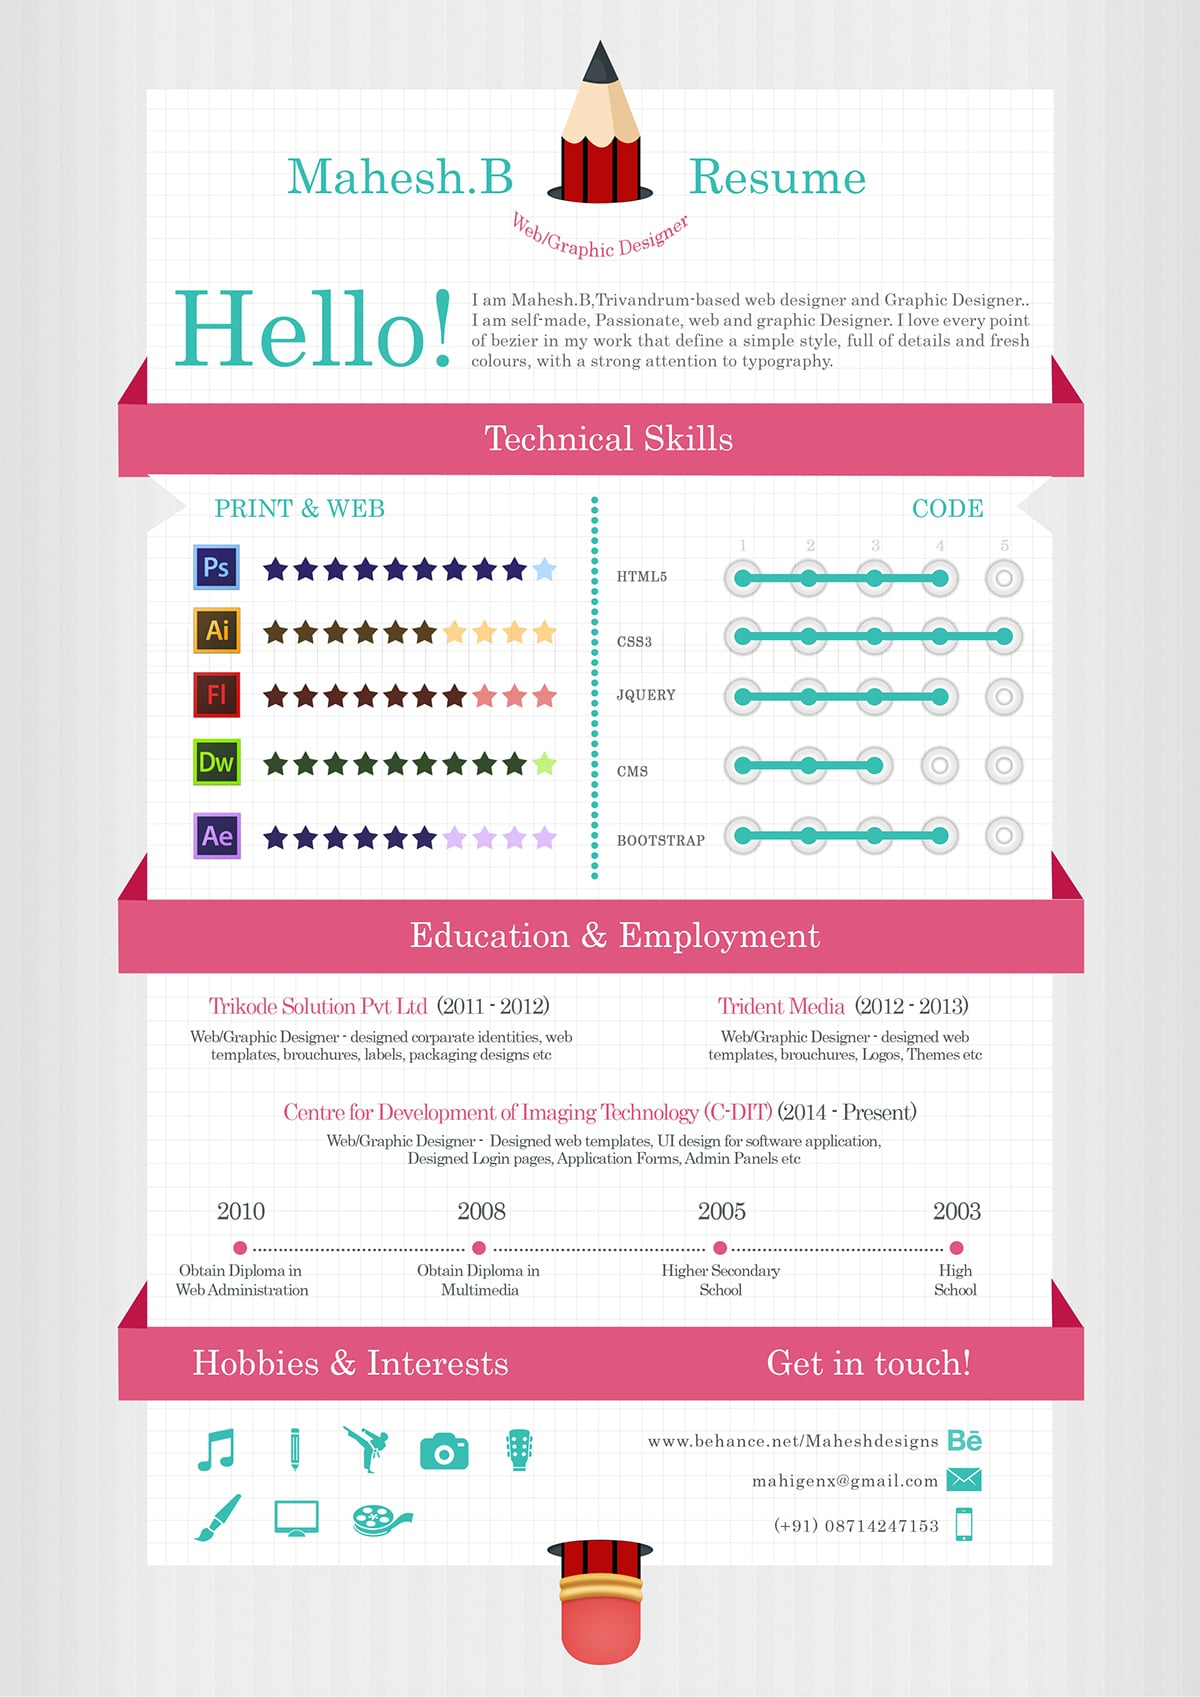 Web Design Resume Template Free Download 55 Amazing Graphic Design Resume Templates To Win Jobs